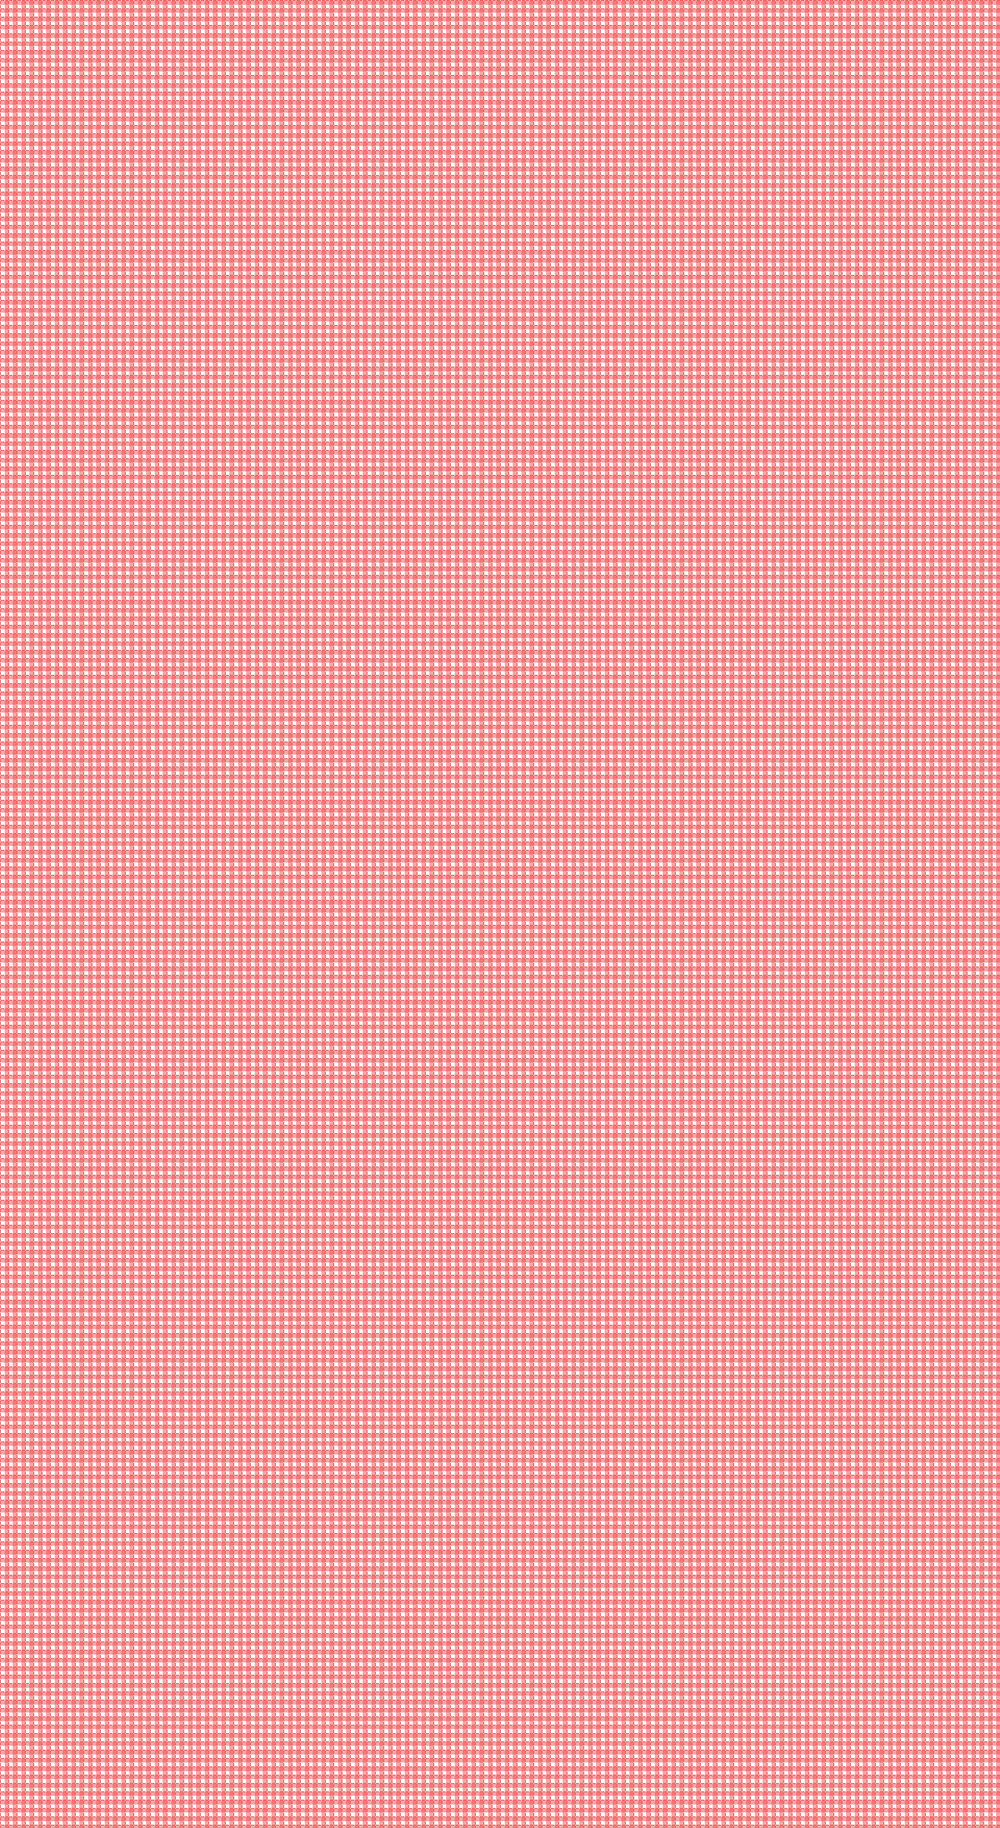 3524-001  GINGHAM-CORAL